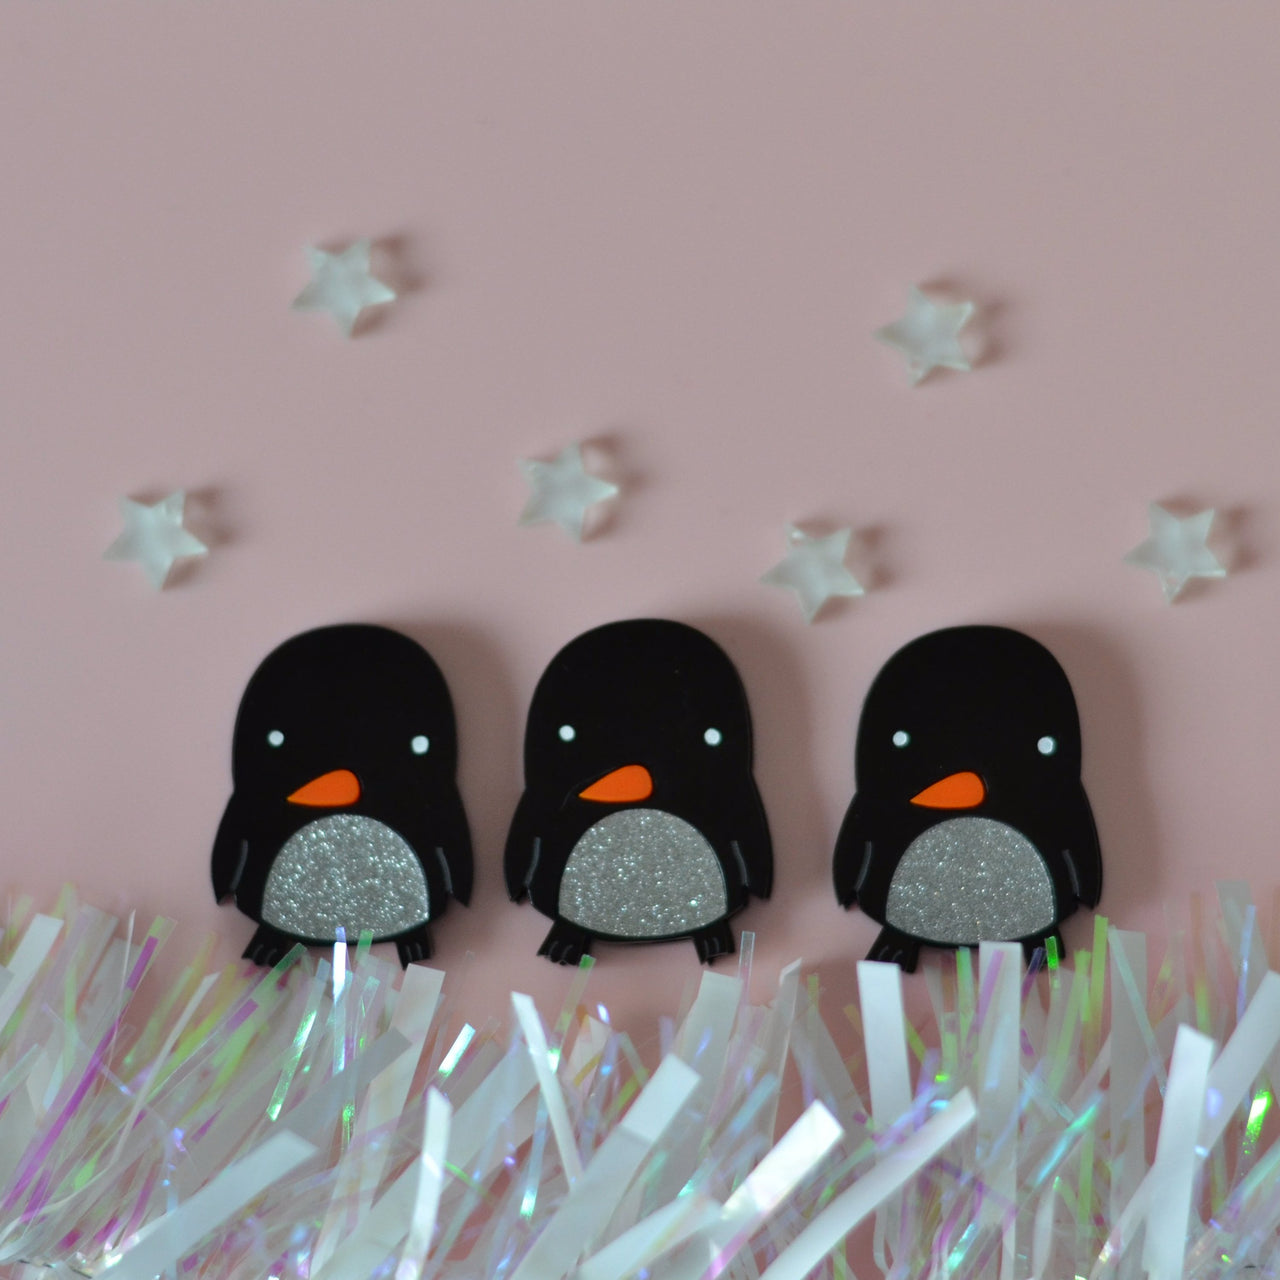 Penguin Brooch - designed by Neil Slorance